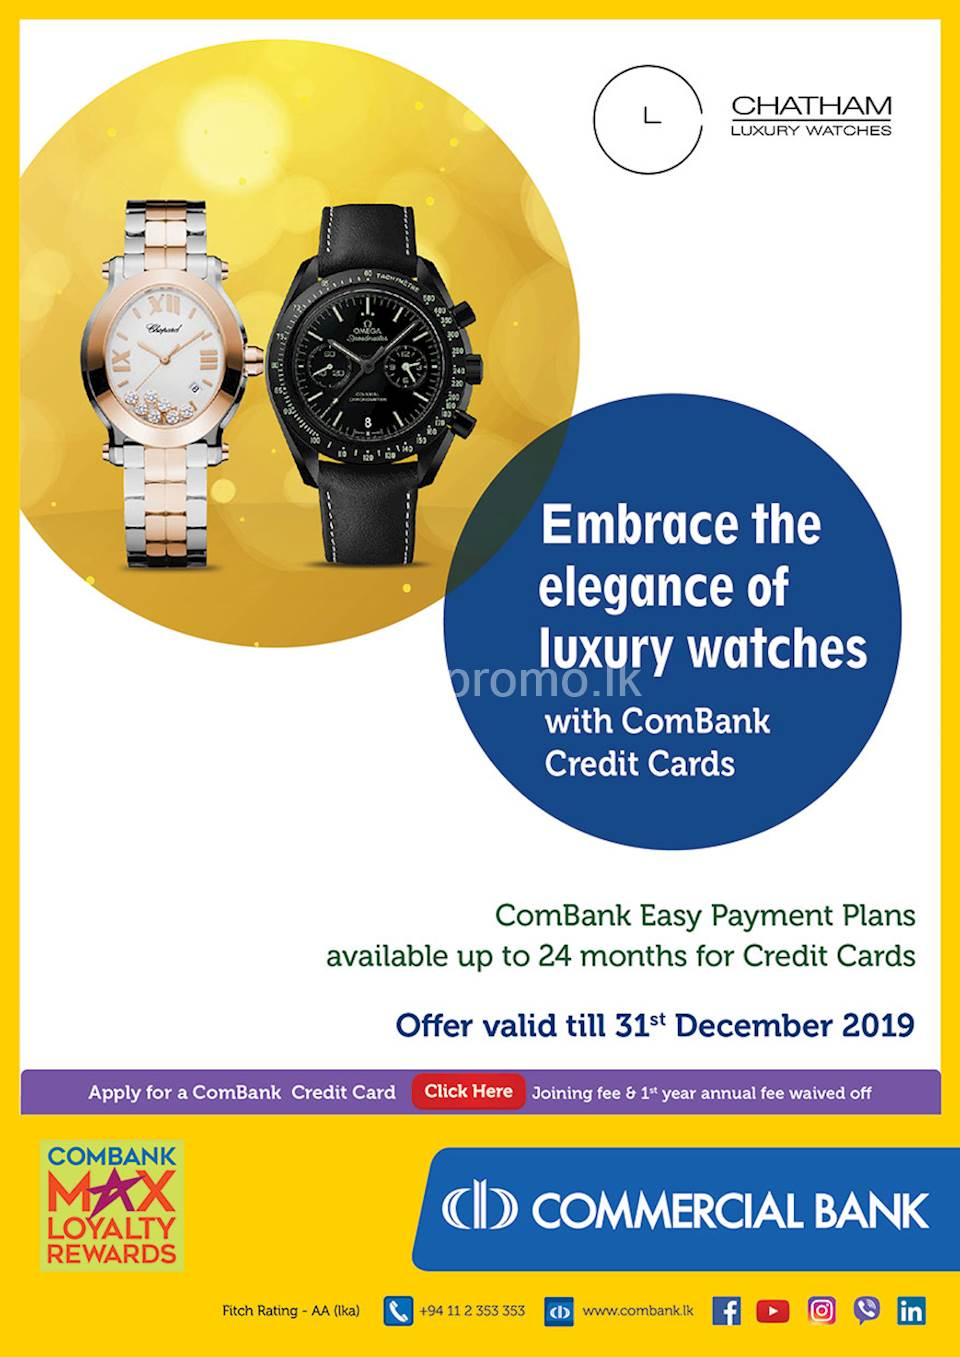 Embrace the elegance of luxury watches with ComBank Credit Cards.